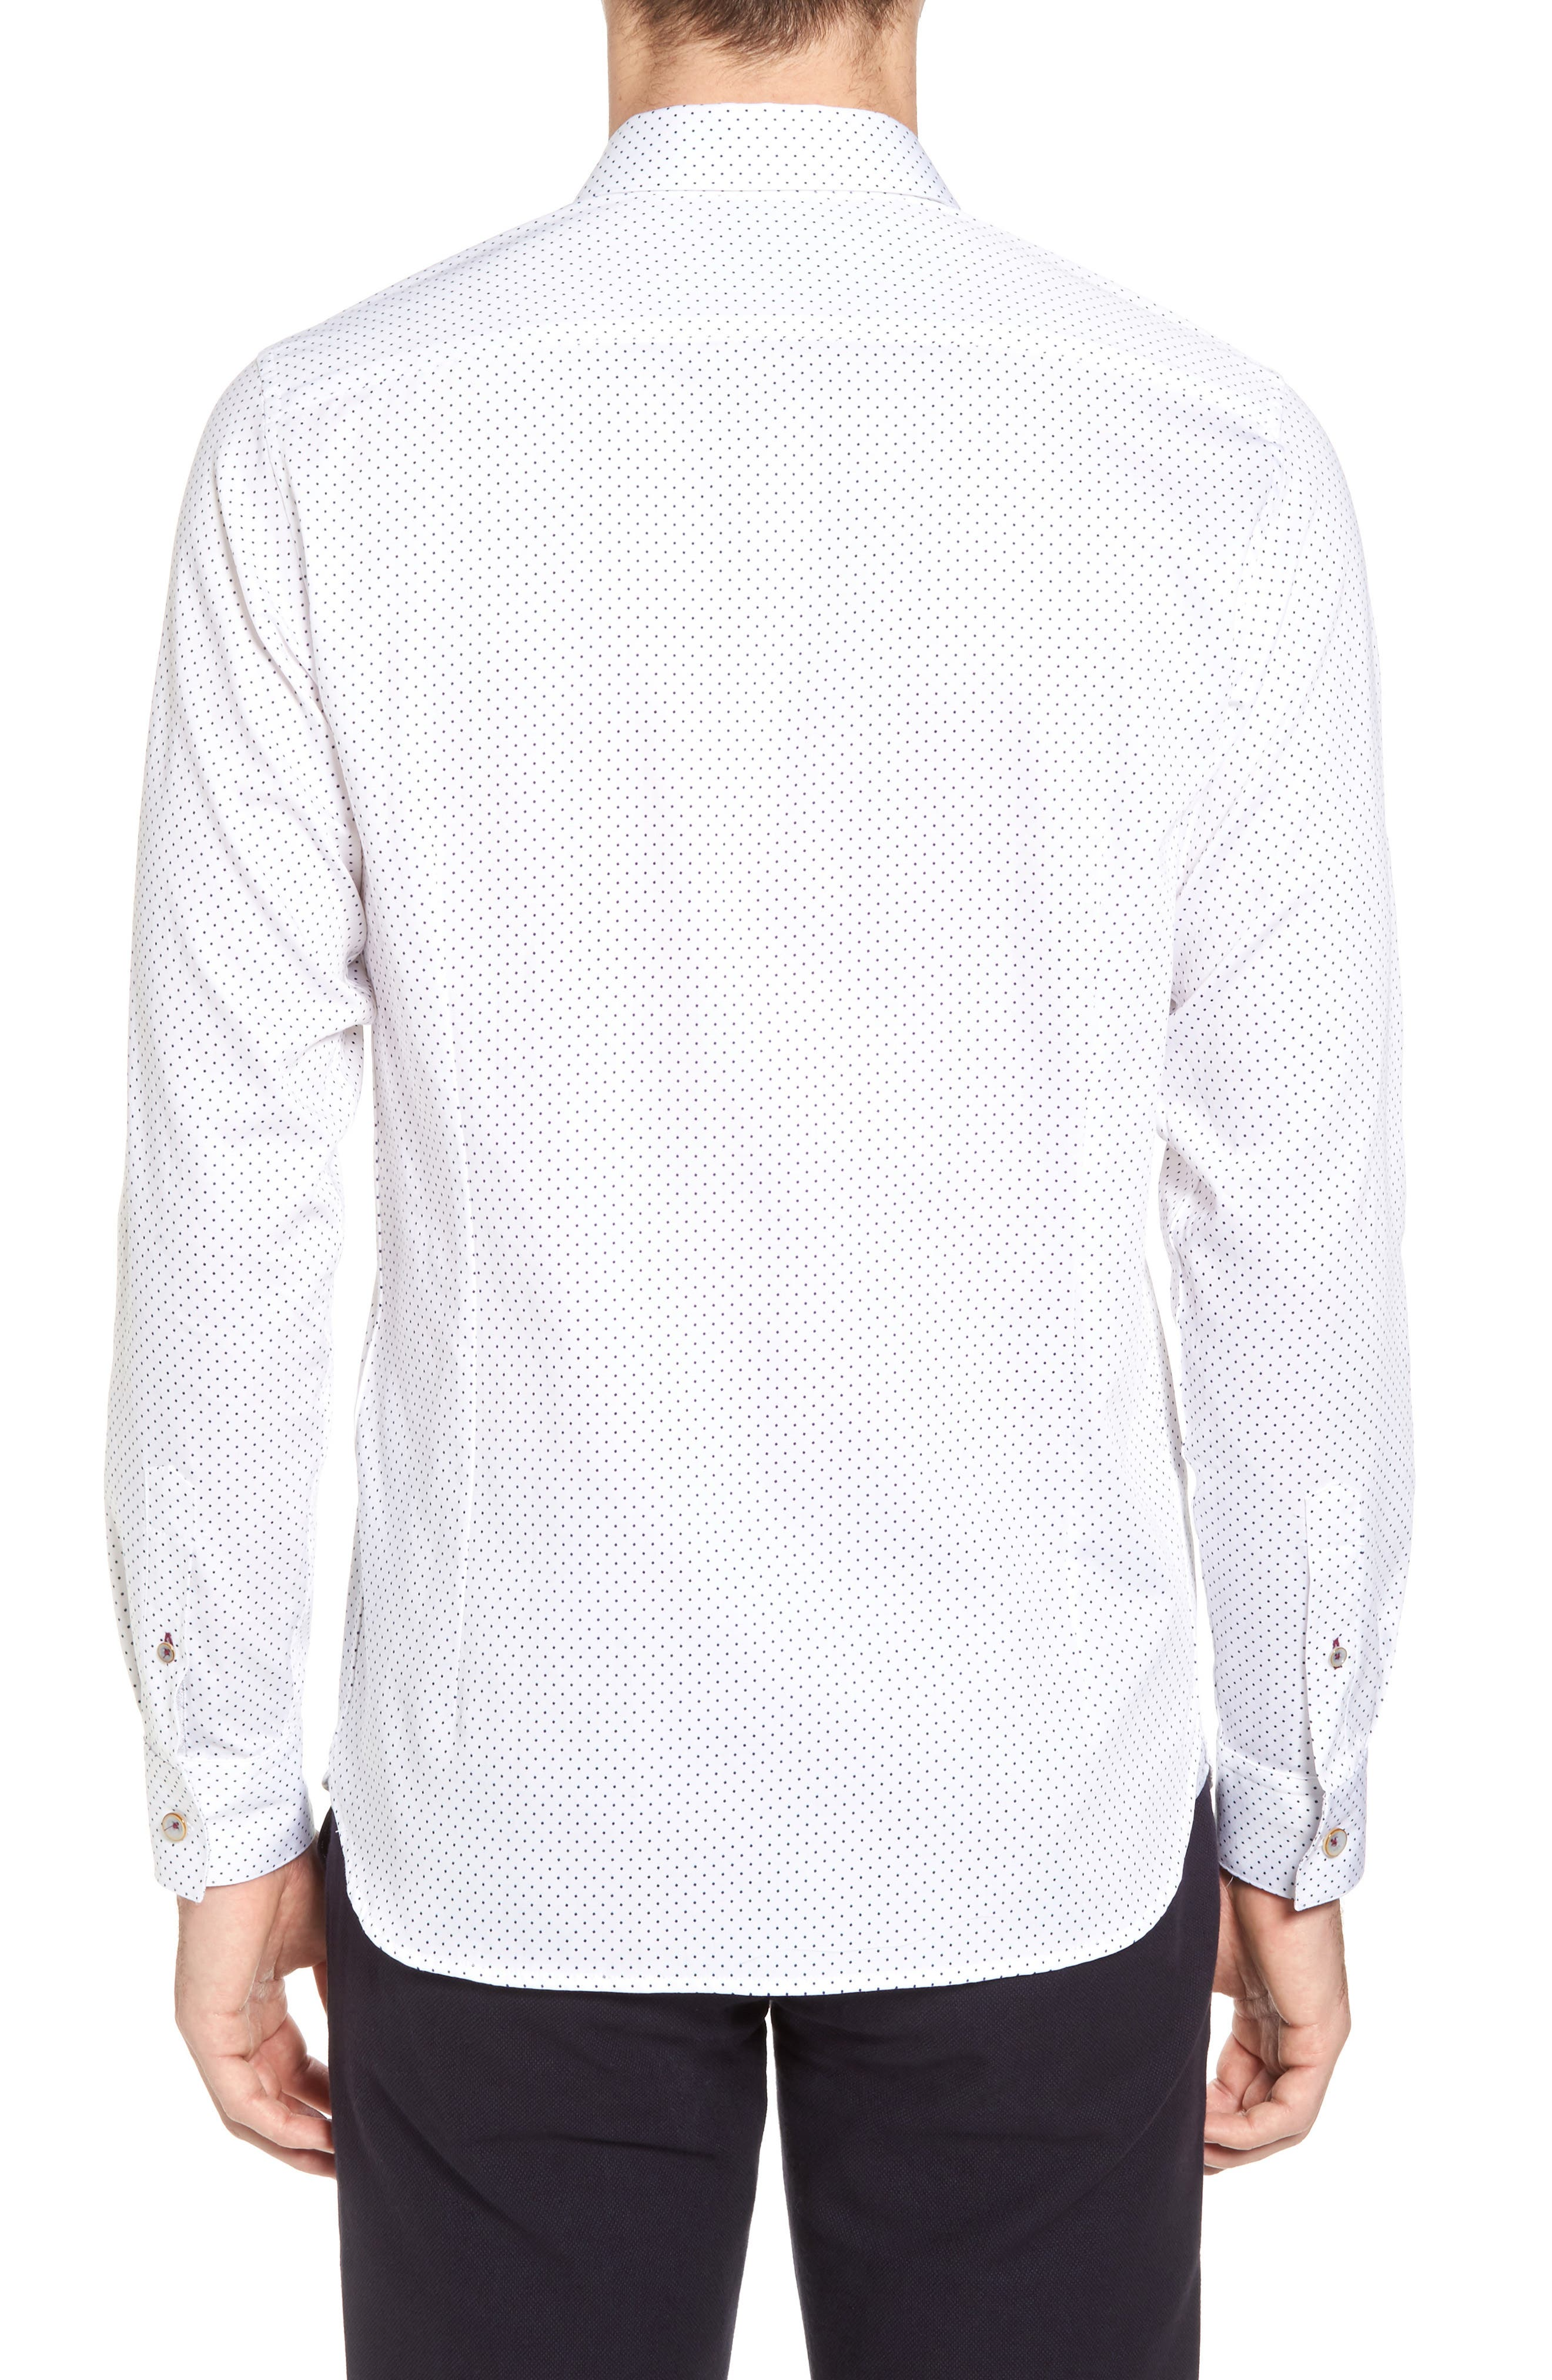 Skwere Trim Fit Sport Shirt,                             Alternate thumbnail 2, color,                             110